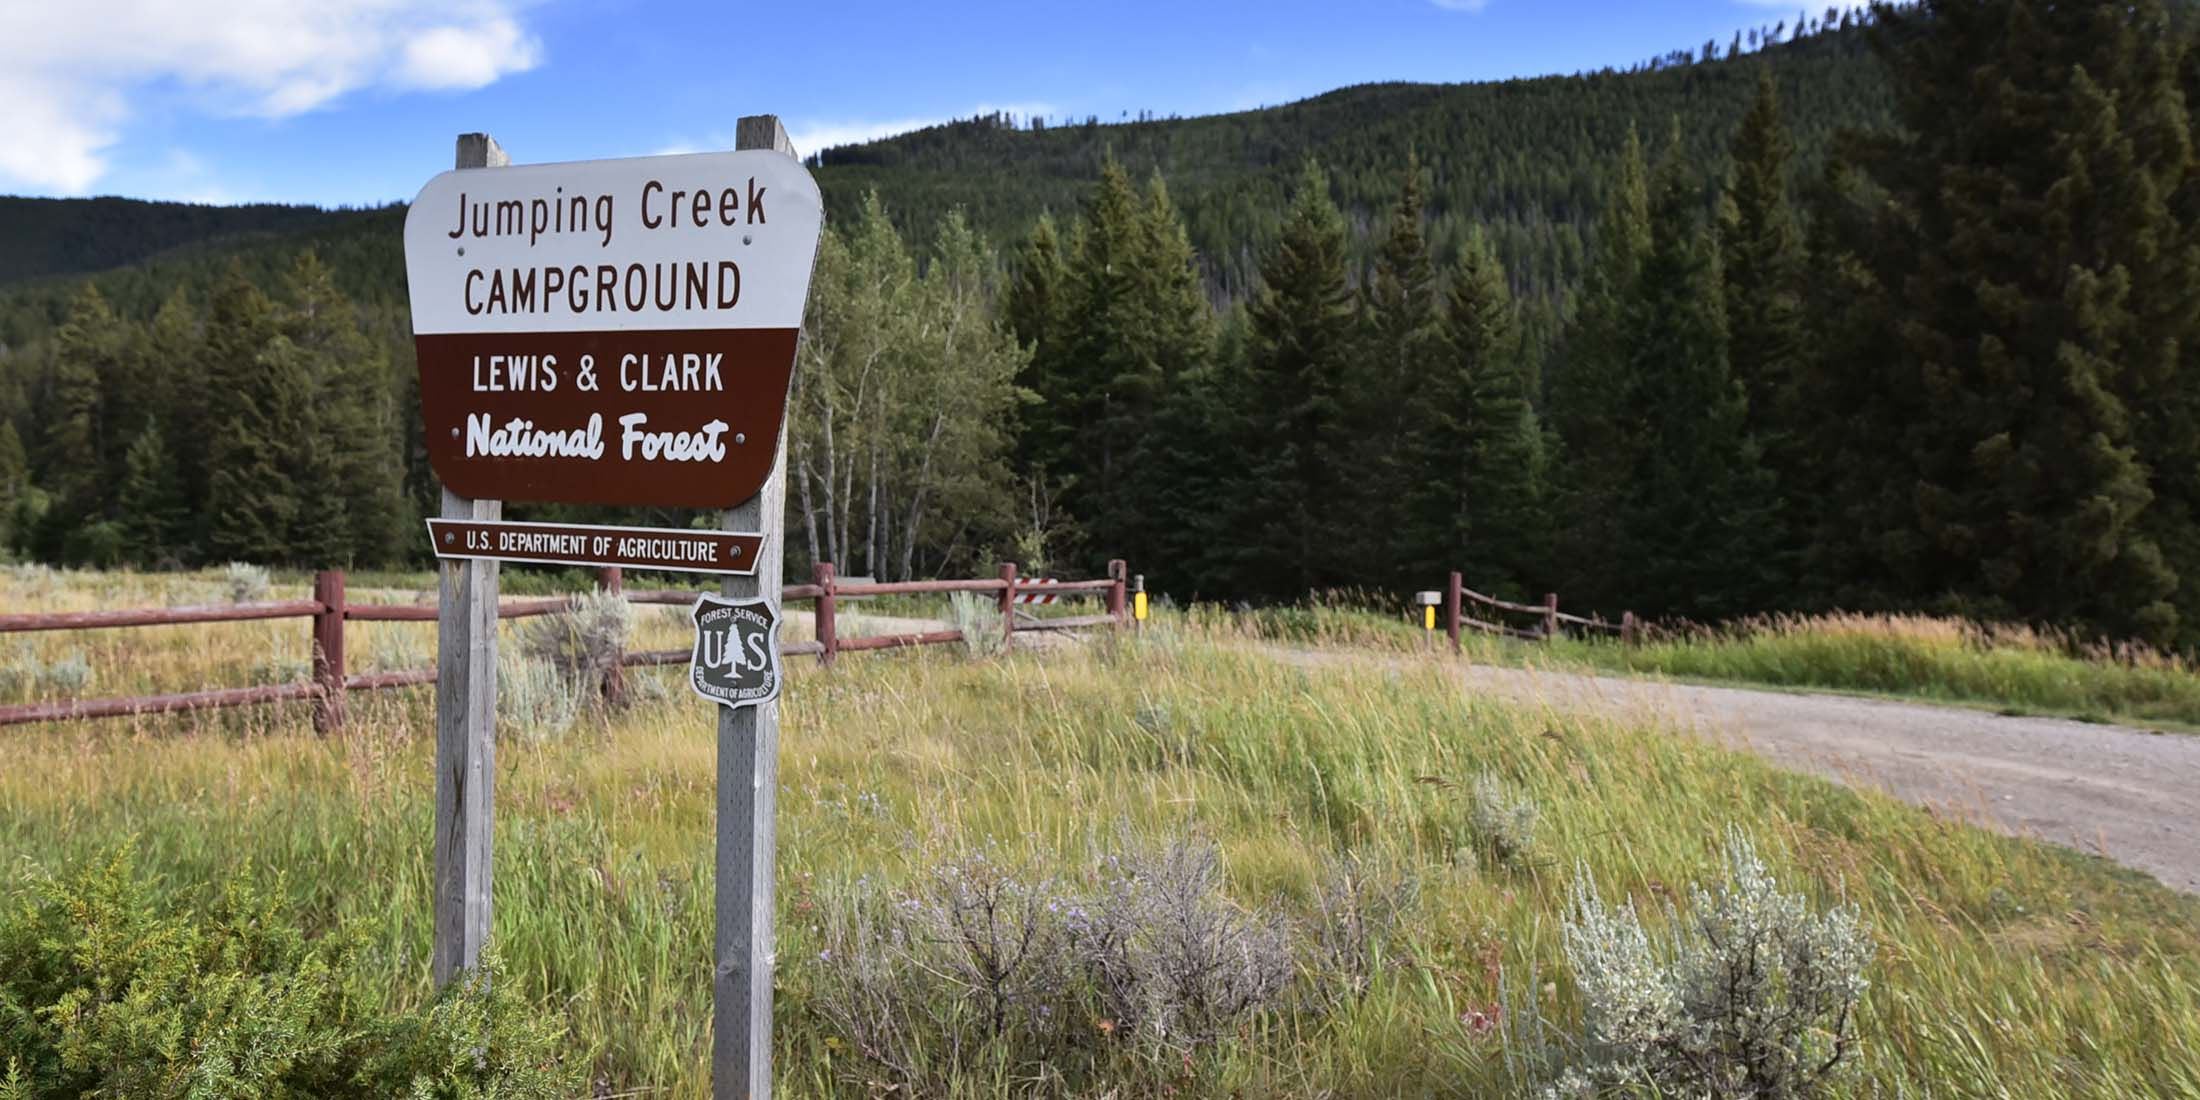 Find our great information on Jumping Creek campground located on Highway 89, 20 miles North of White Sulphur Springs, Montana in the Little Belt Mountains.